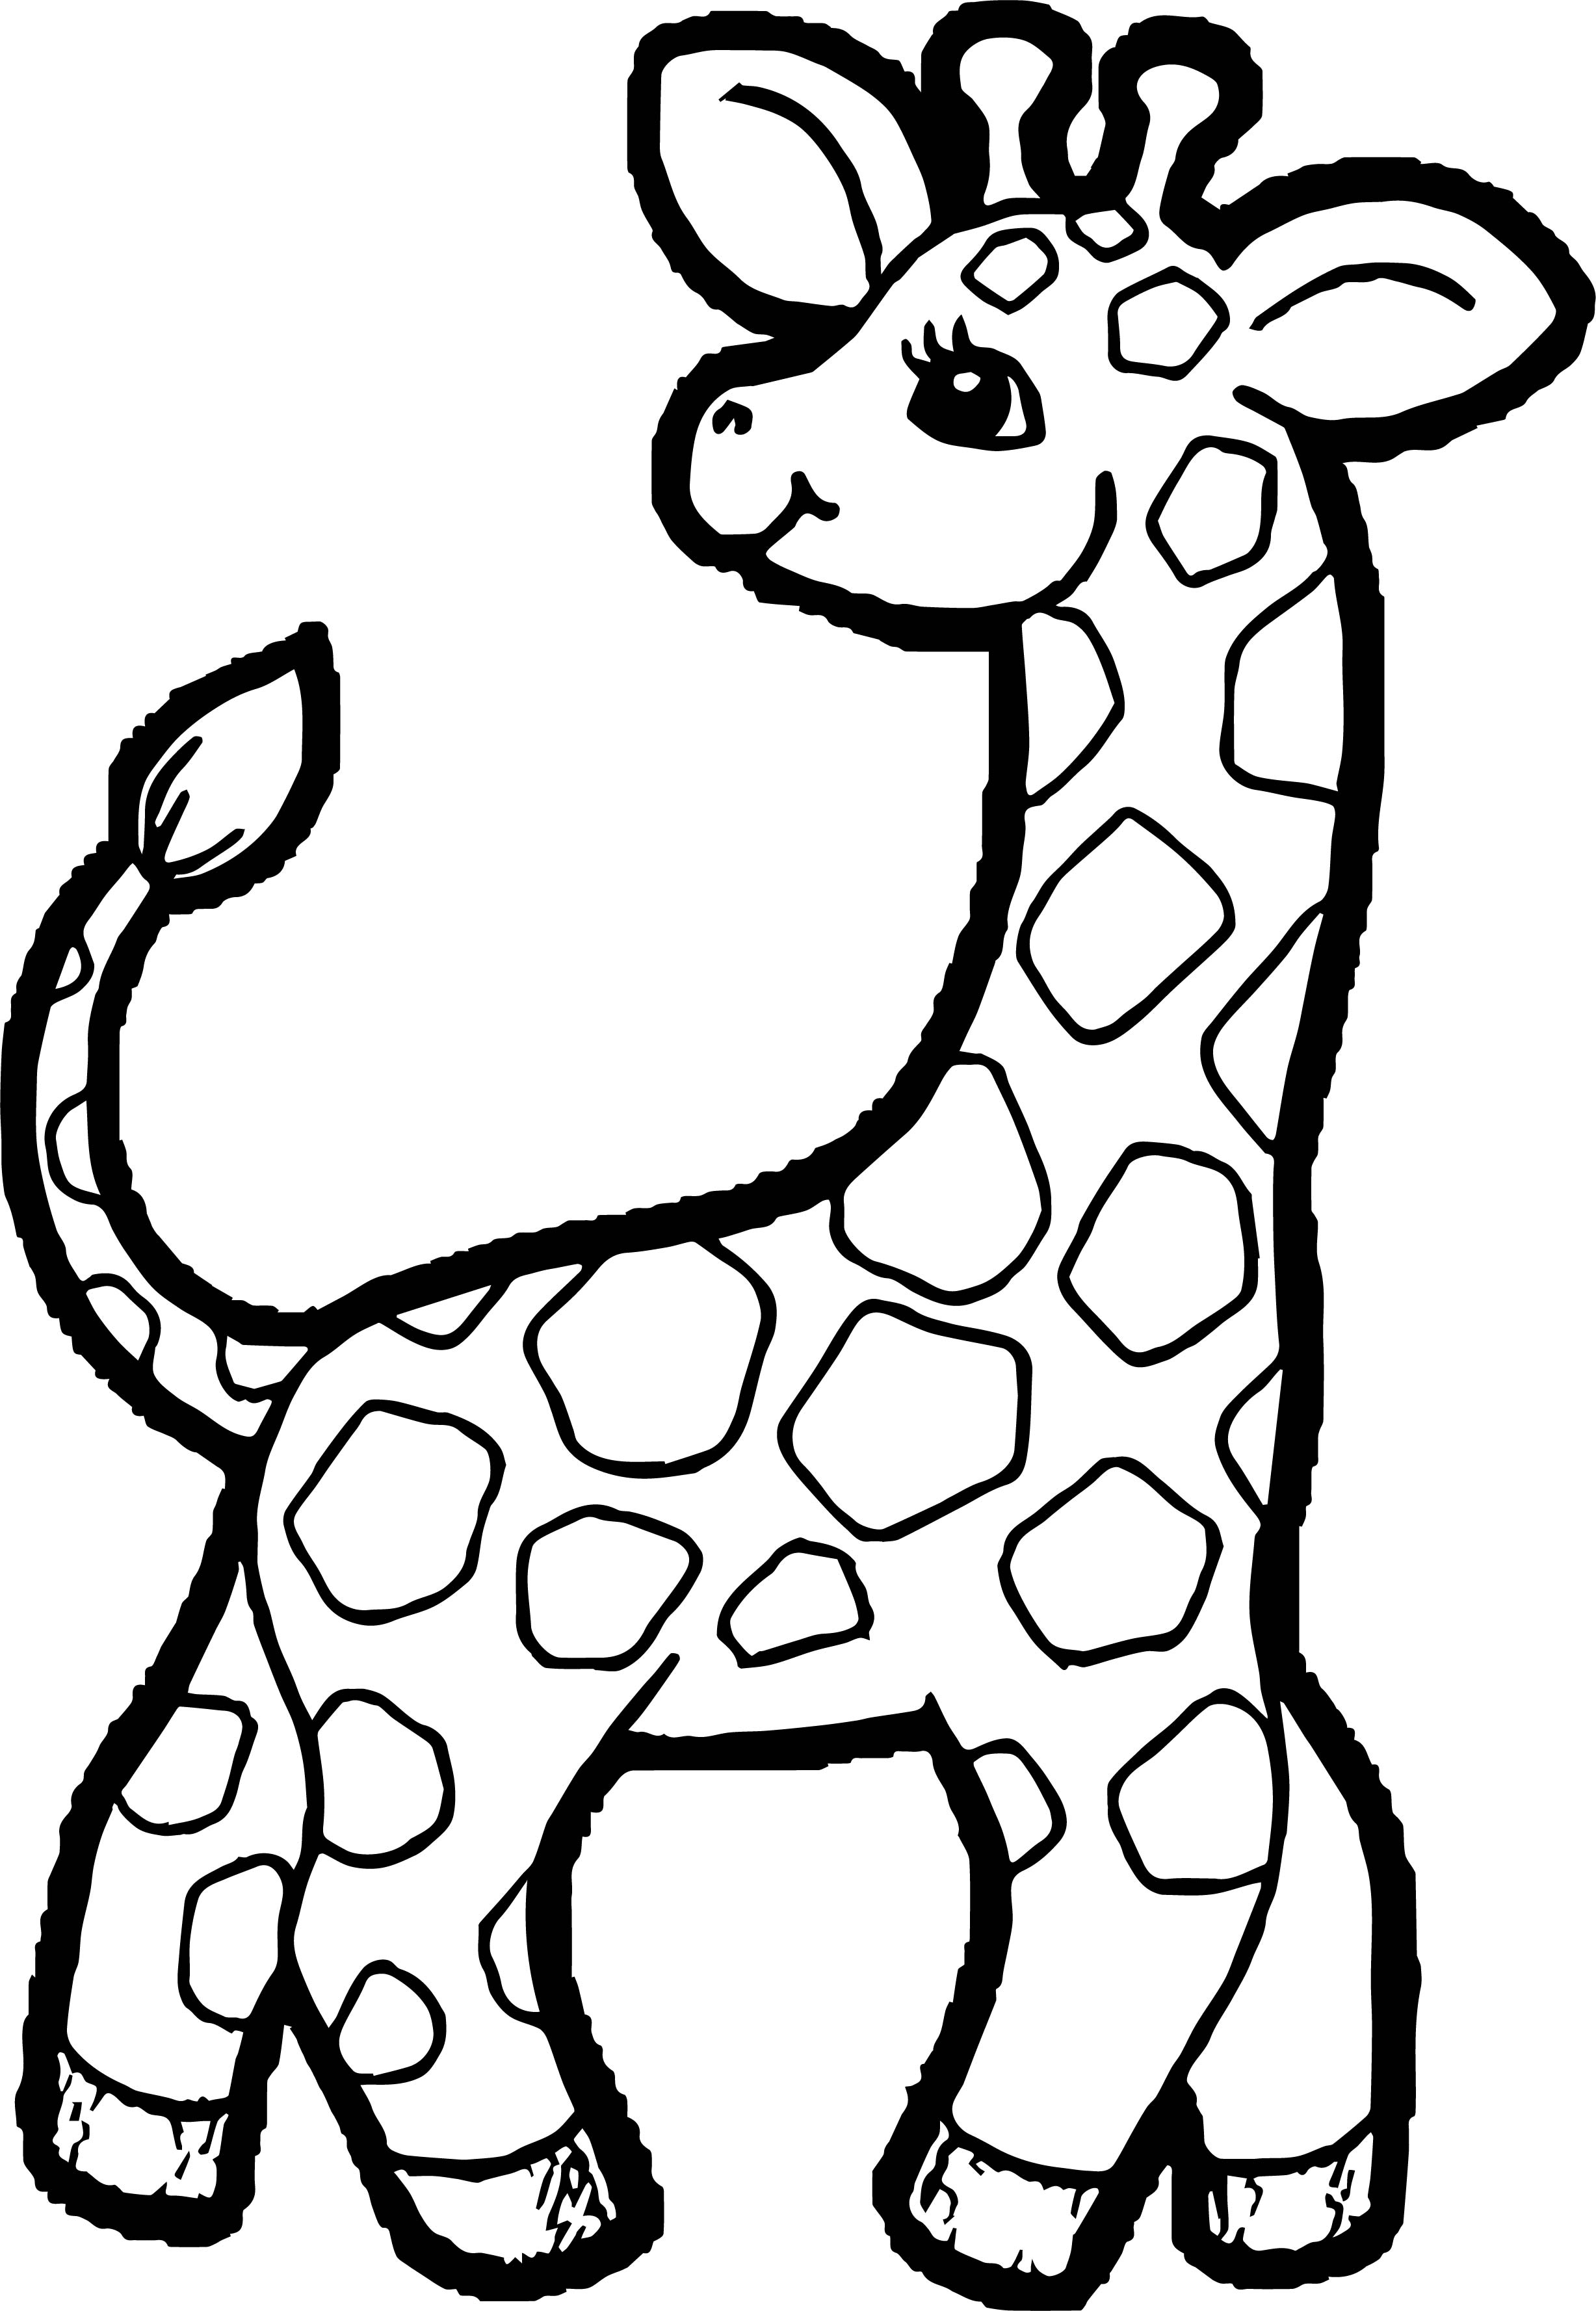 Giraffe Back Look Kids Free Coloring Page